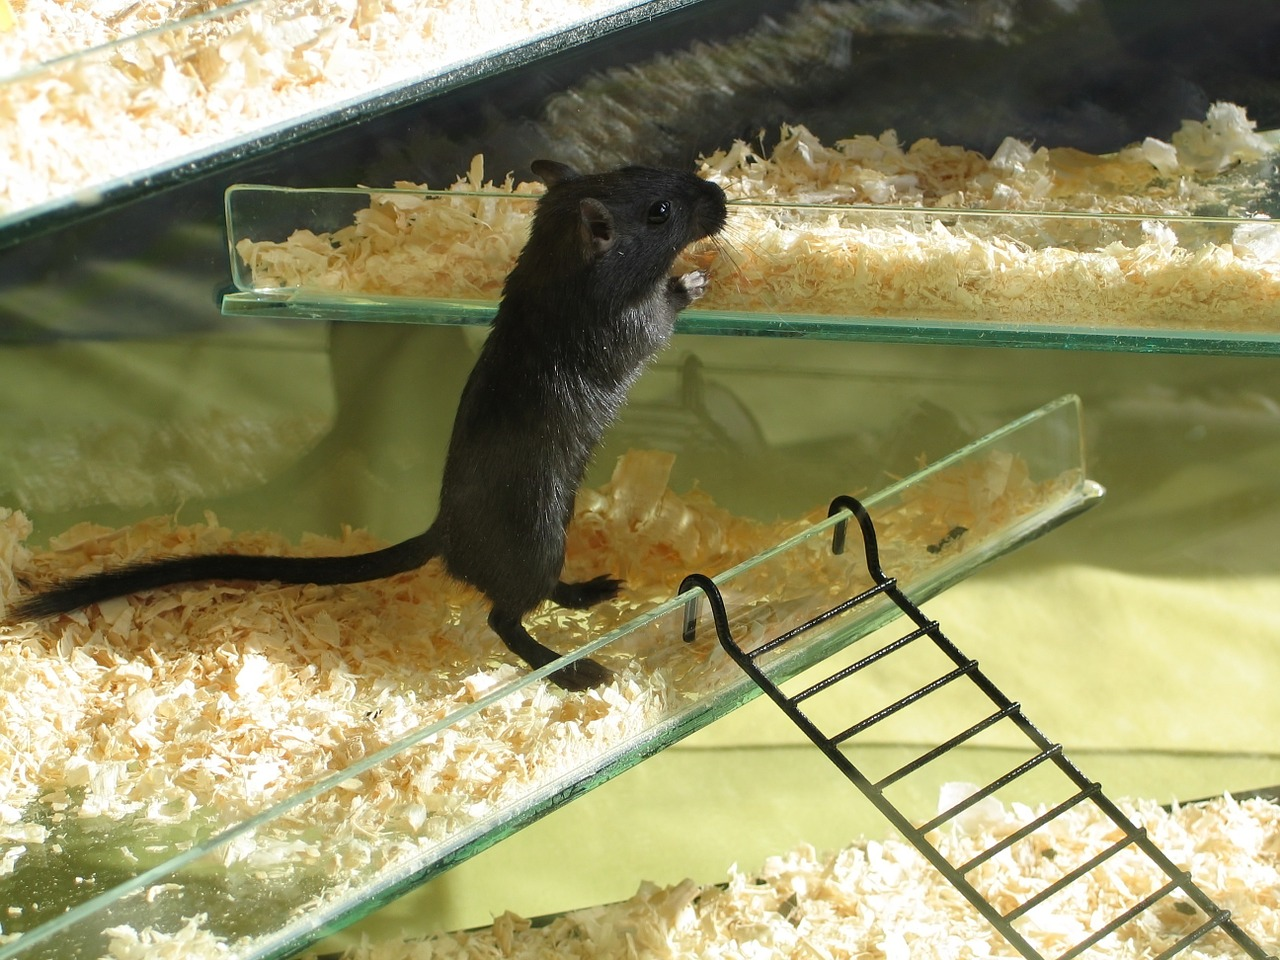 gerbil-black-mouse-1269468_1280